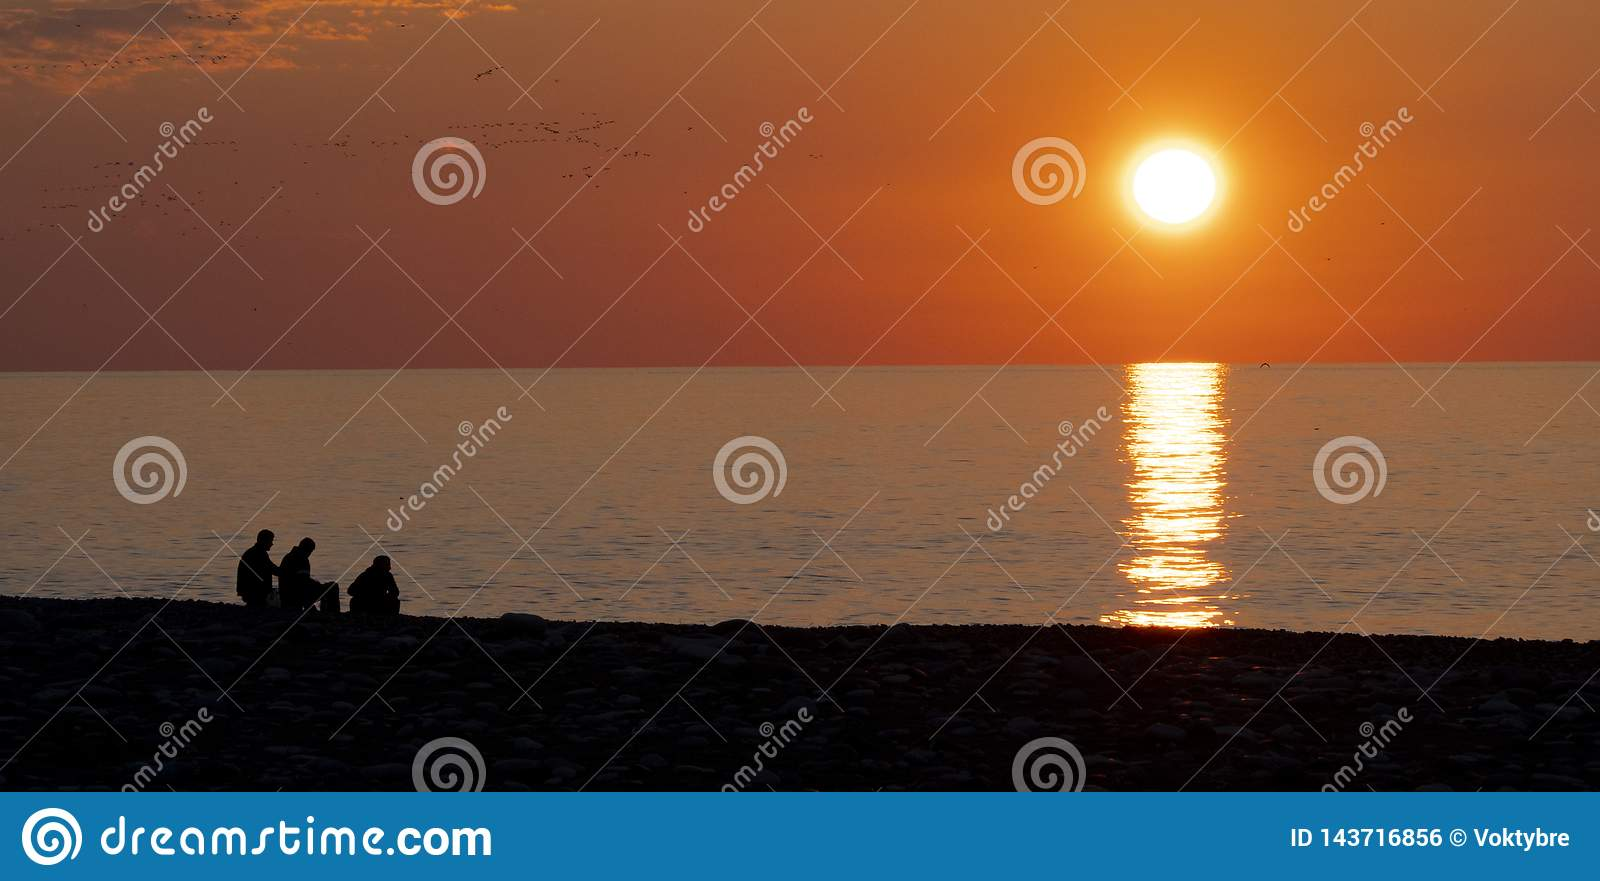 People on the background of the sunset and the sea on the waterfront